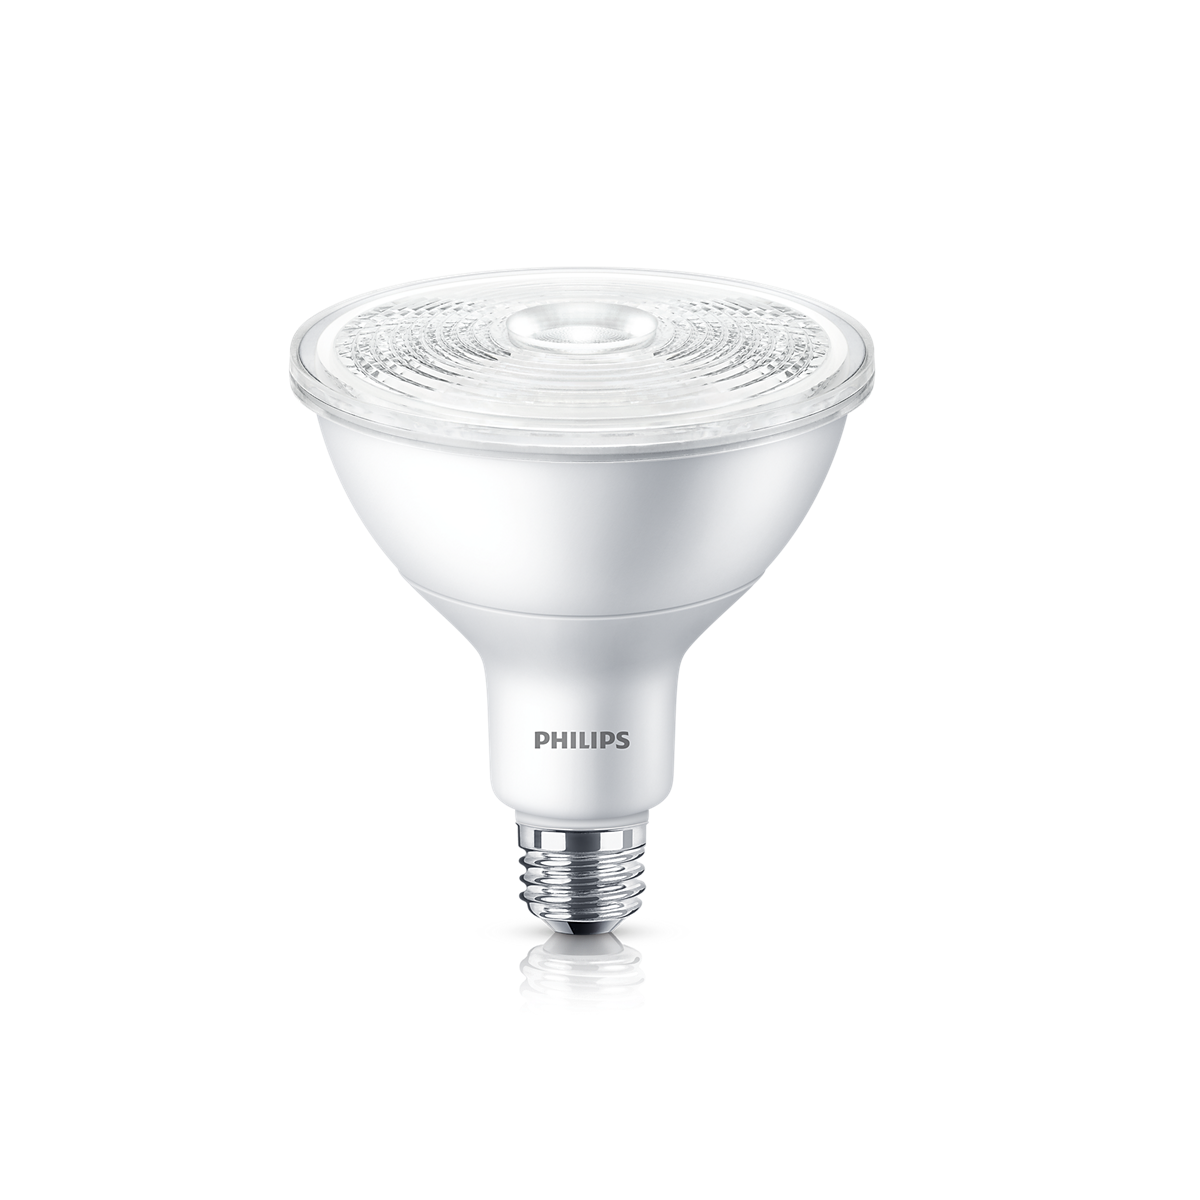 PAR38 LED Single Optic Lamps with AirFlux Technology